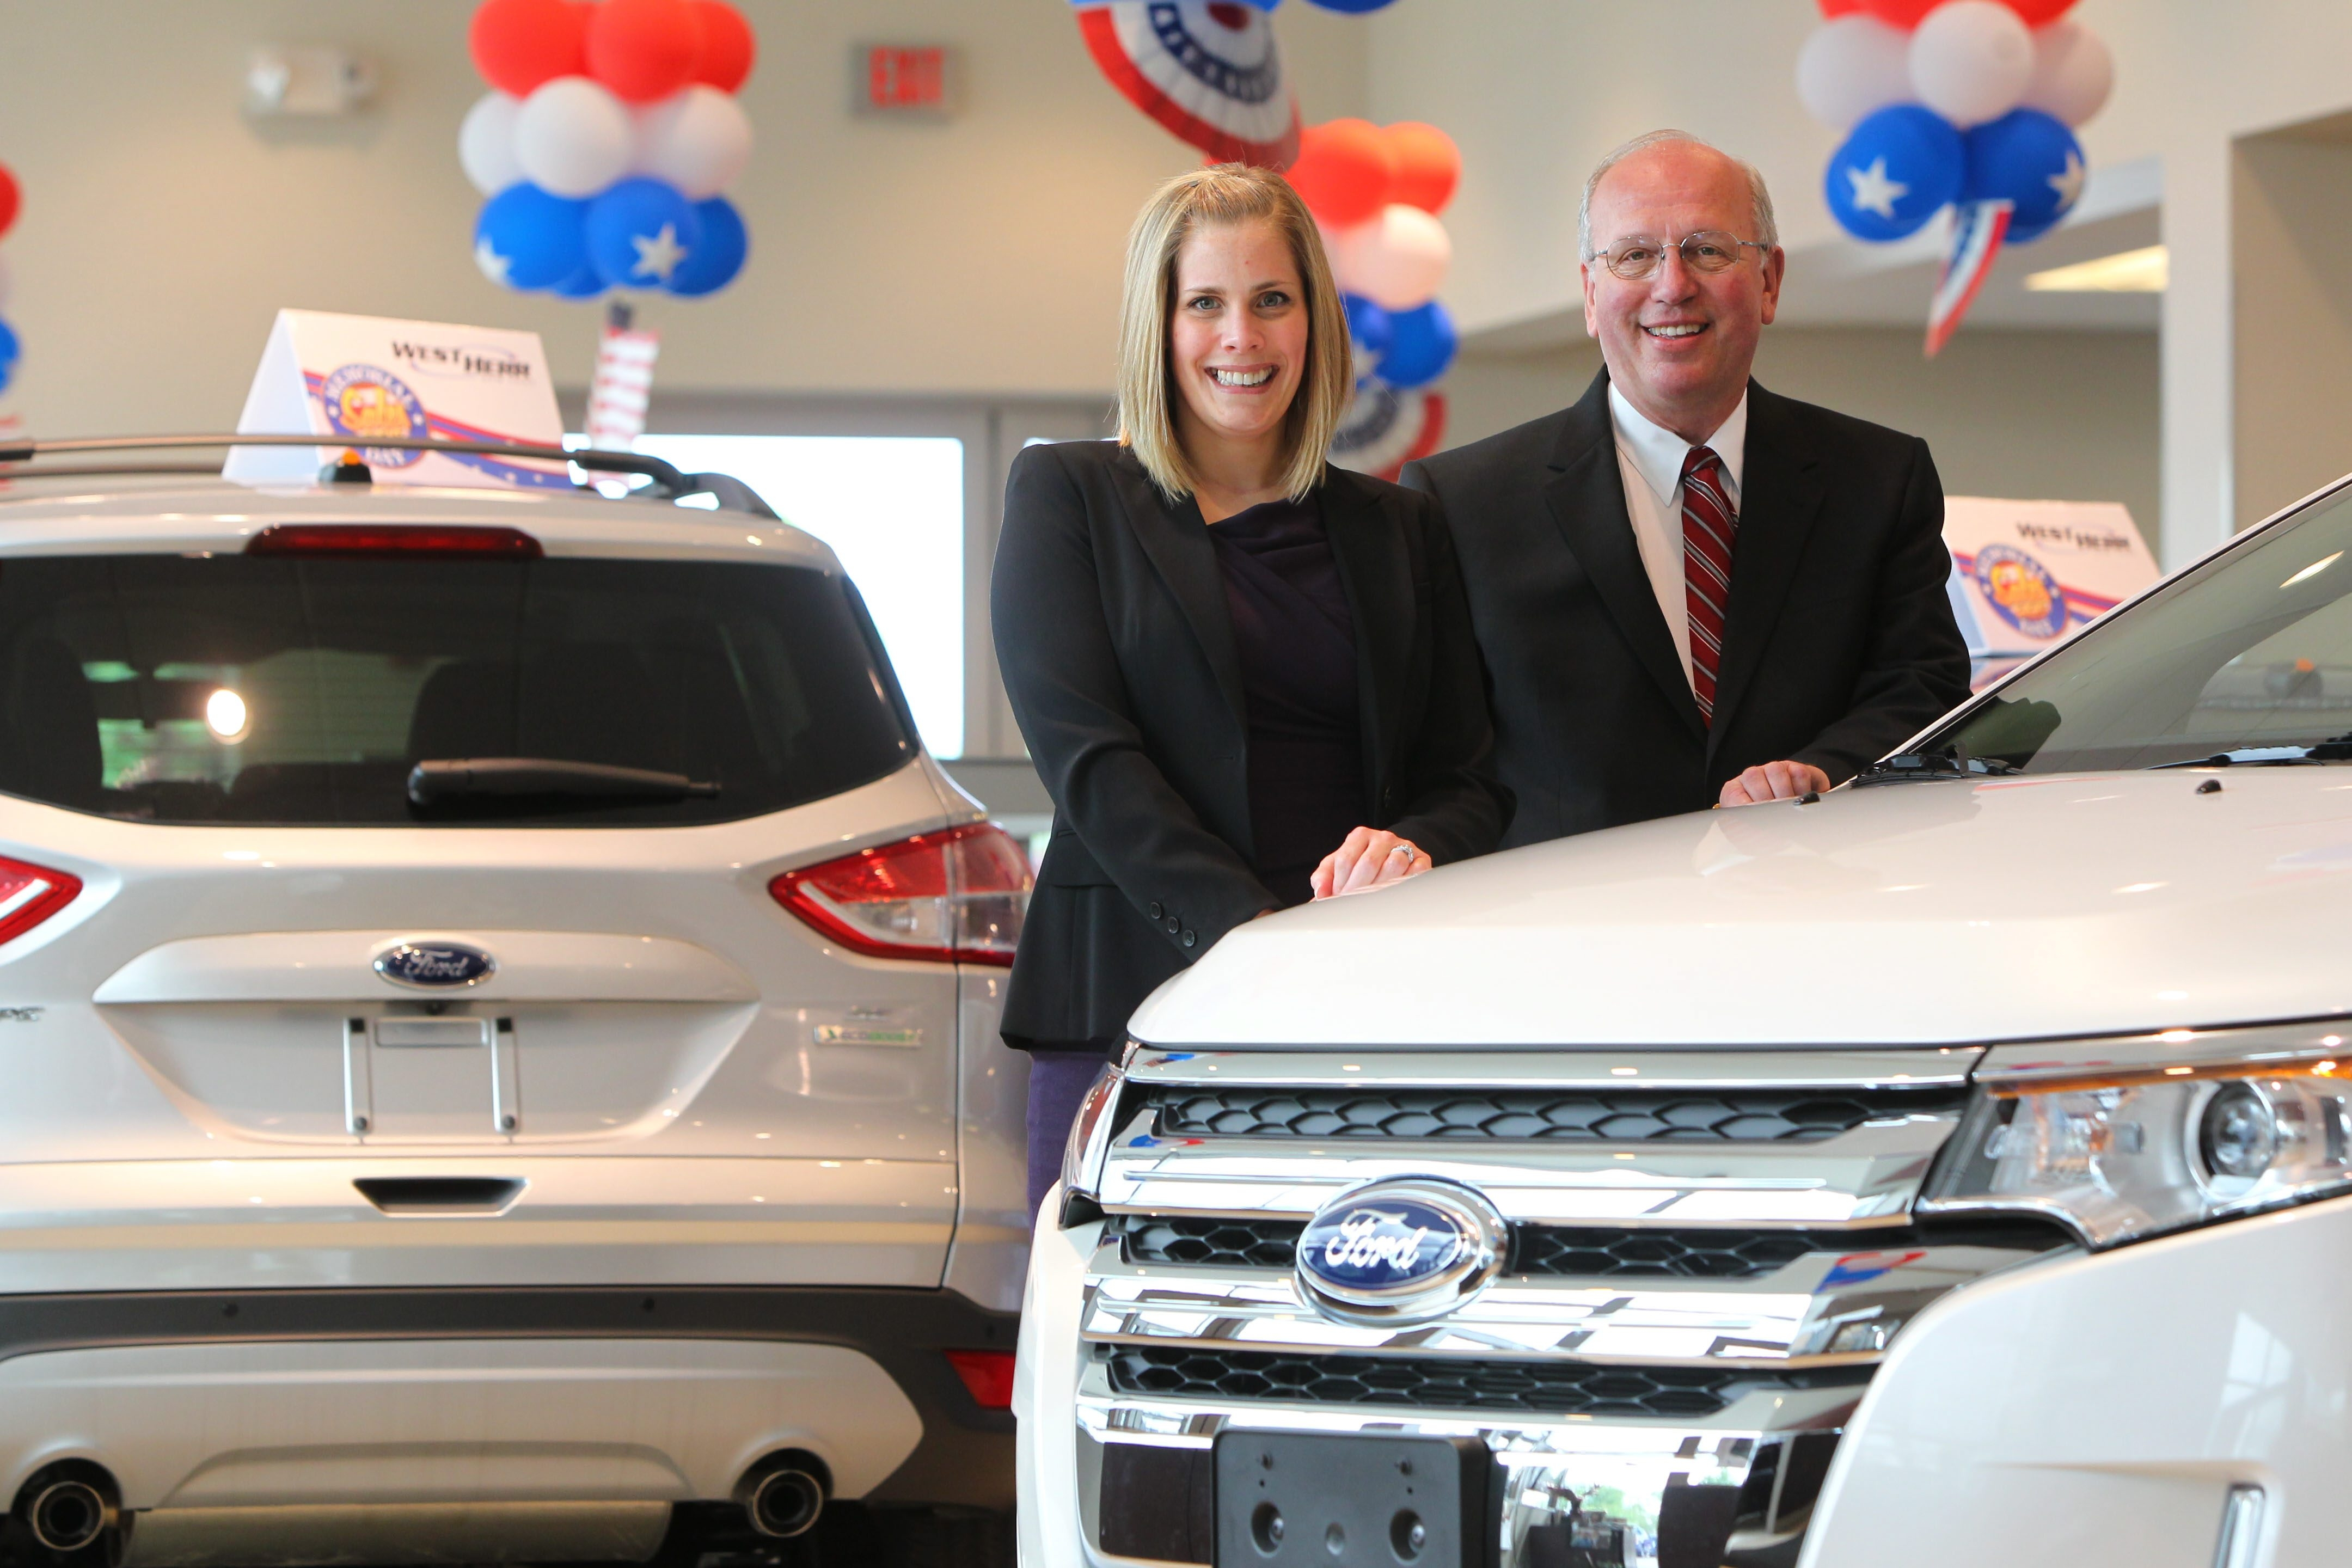 West Herr Ford/Lincoln of Amherst General Manager Beth Hollis and President and CEO Scott Bieler at the dealership in Getzville.